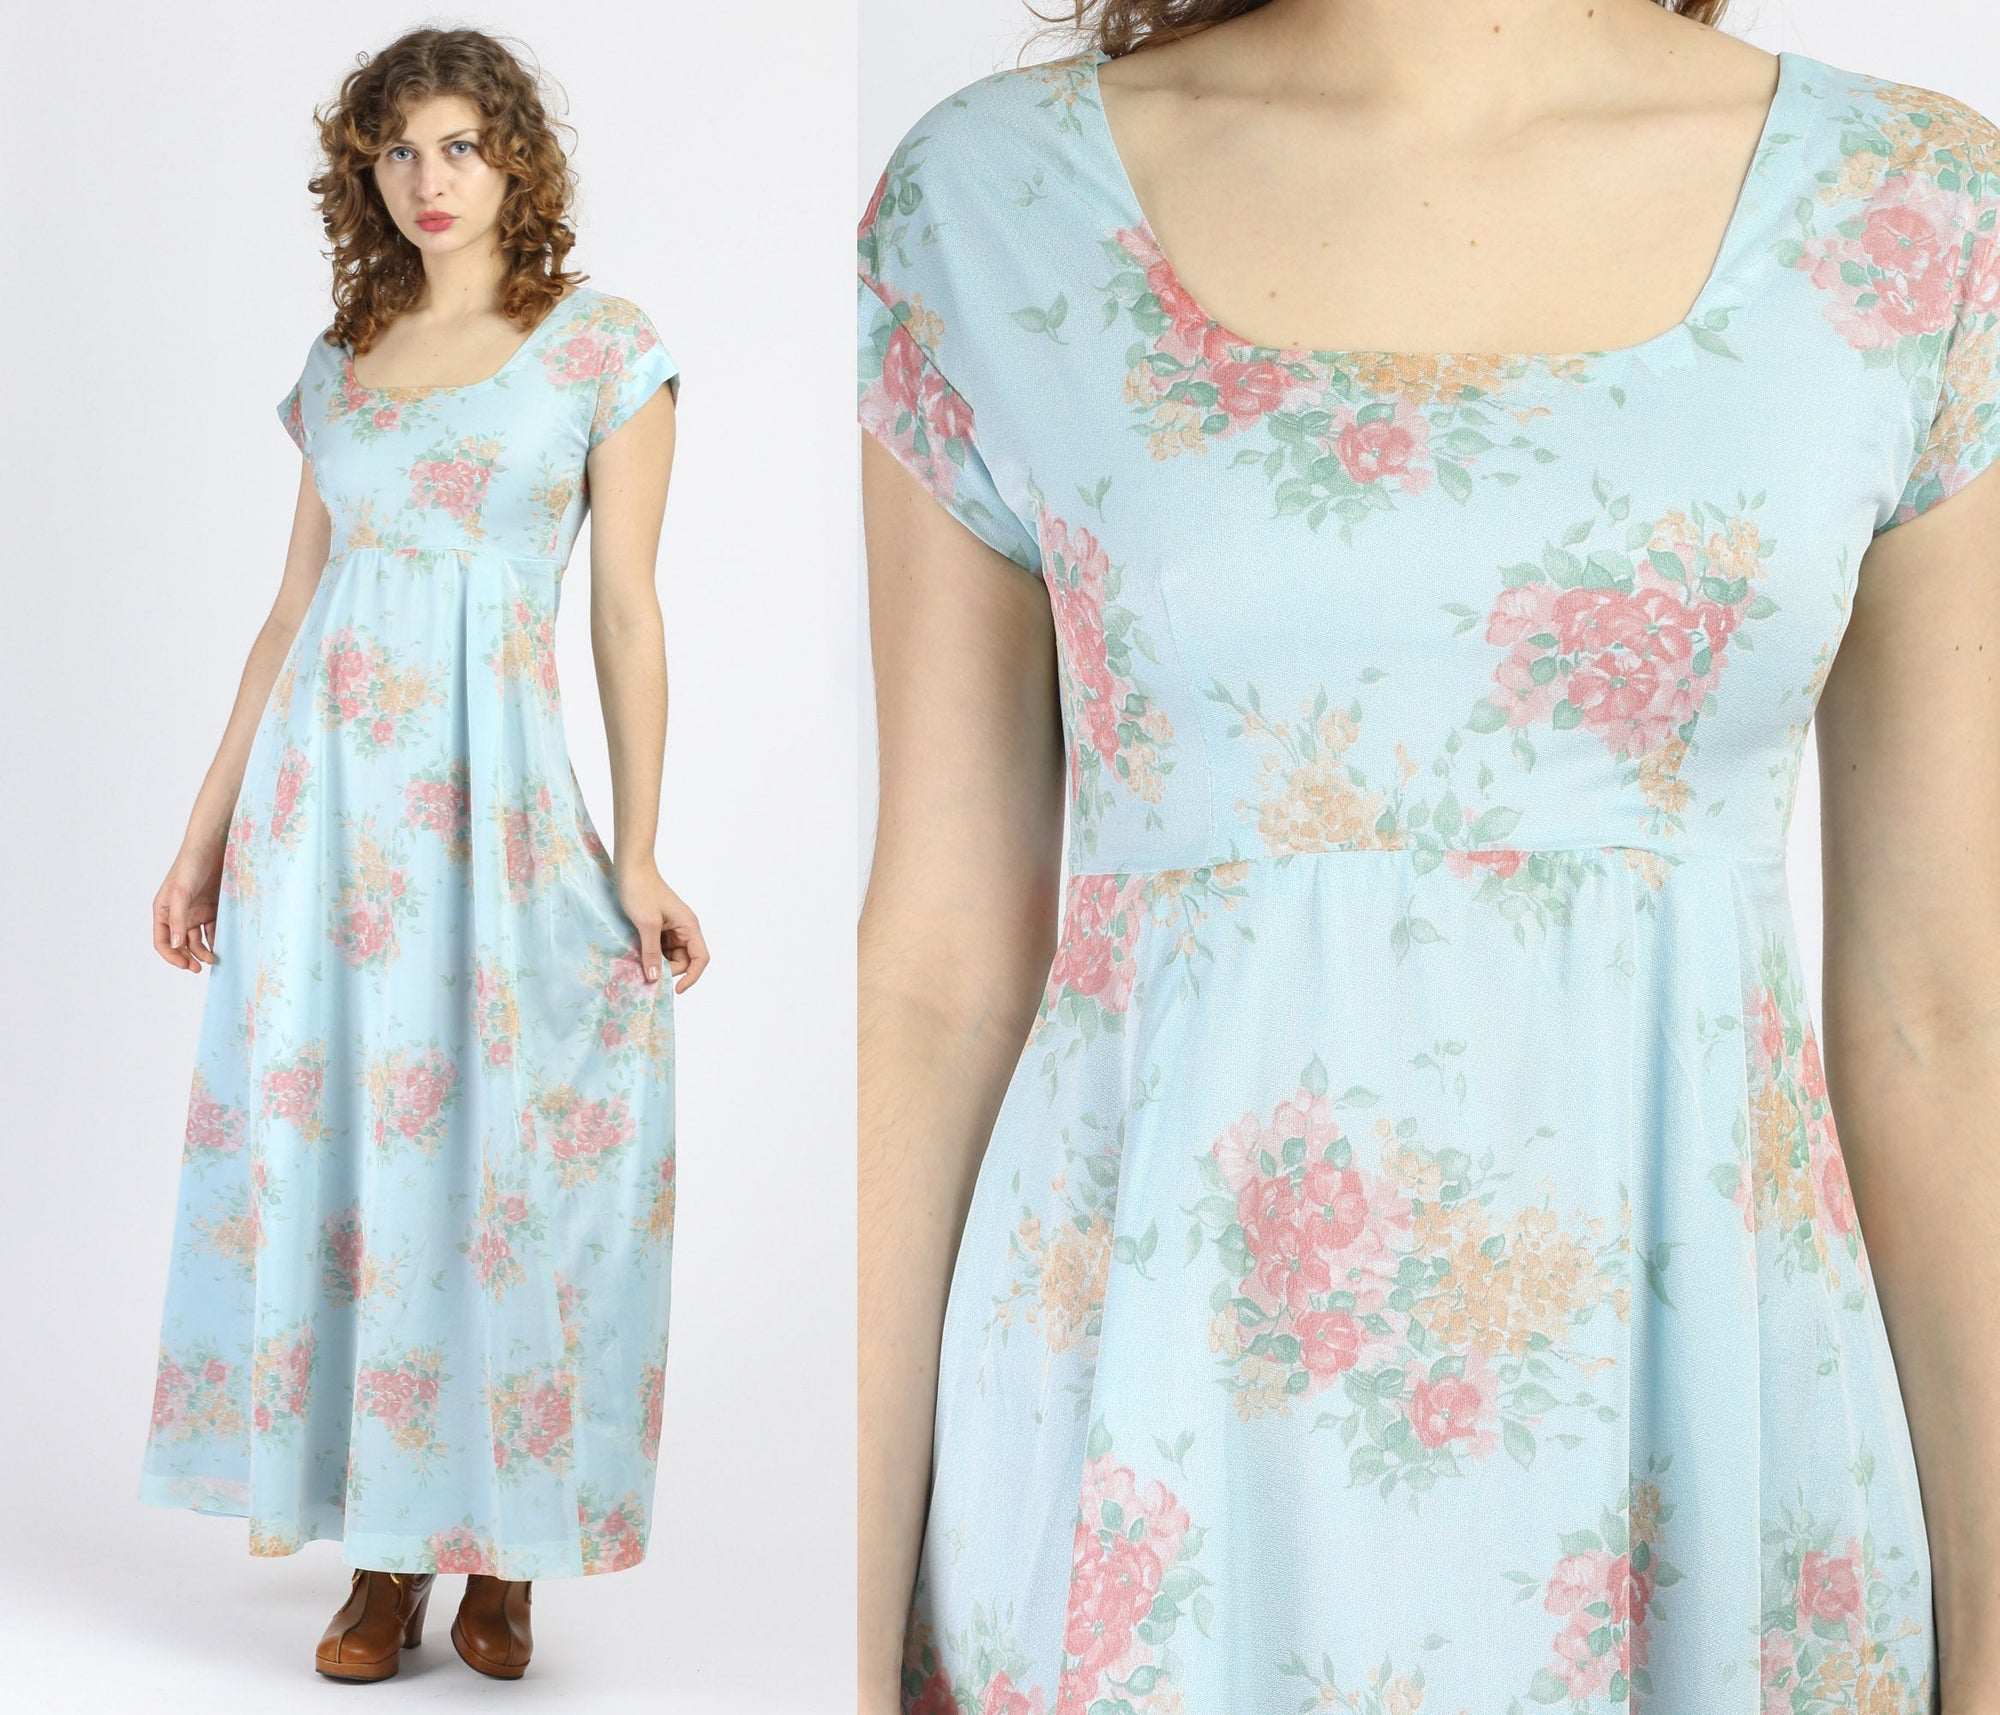 70s Boho Blue Floral Maxi Dress - Small